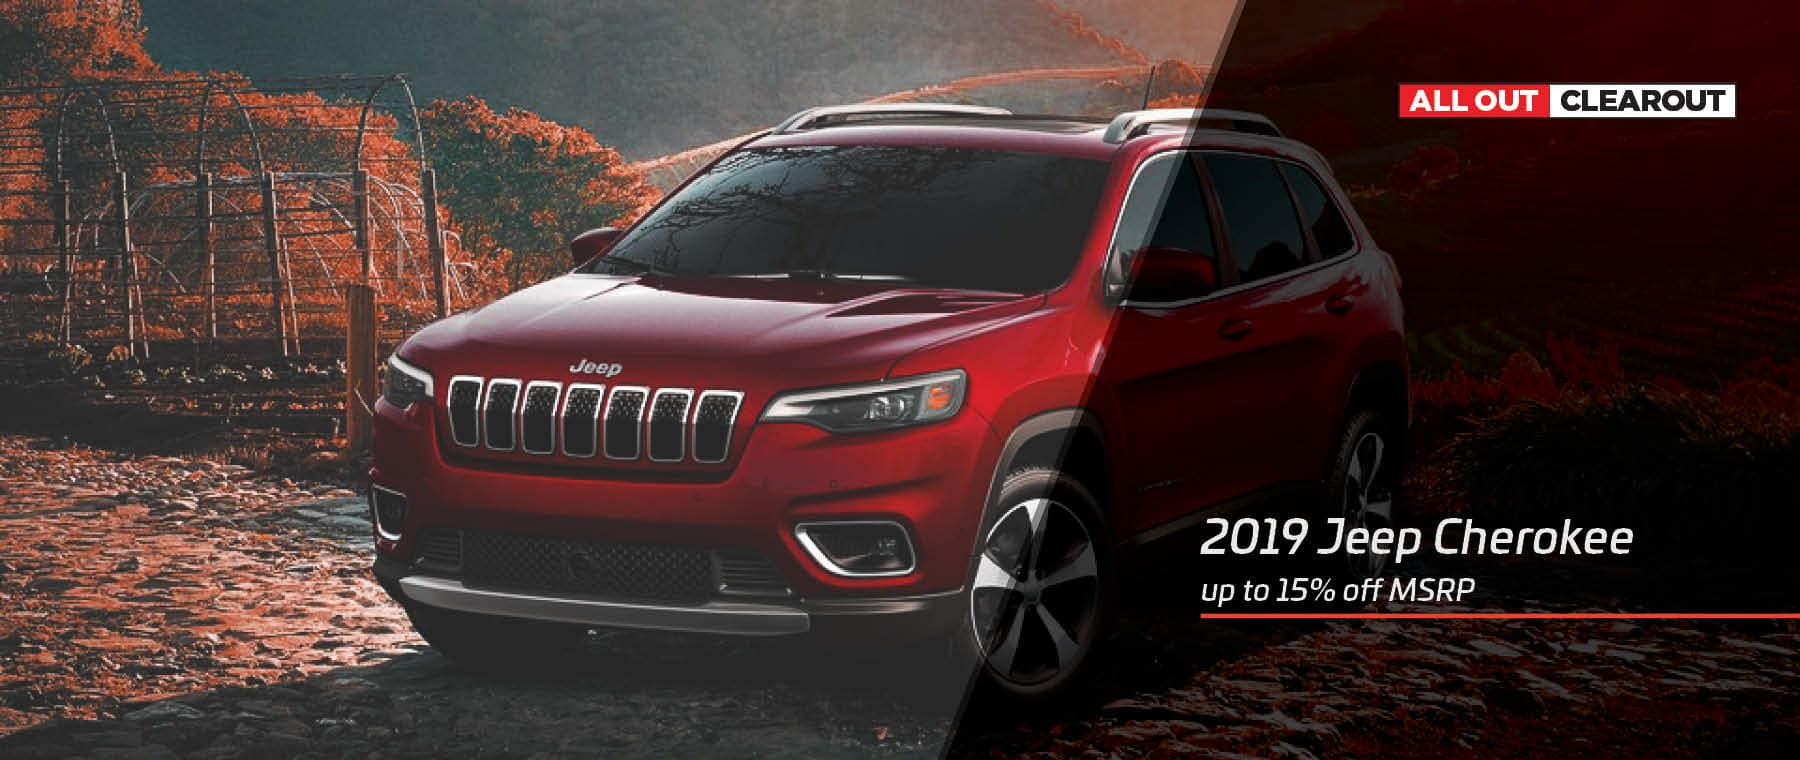 Patriot Tires Jeep Suv Car Truck Minivan >> Chrysler Dealer In Regina Sk Serving Moose Jaw Crestview